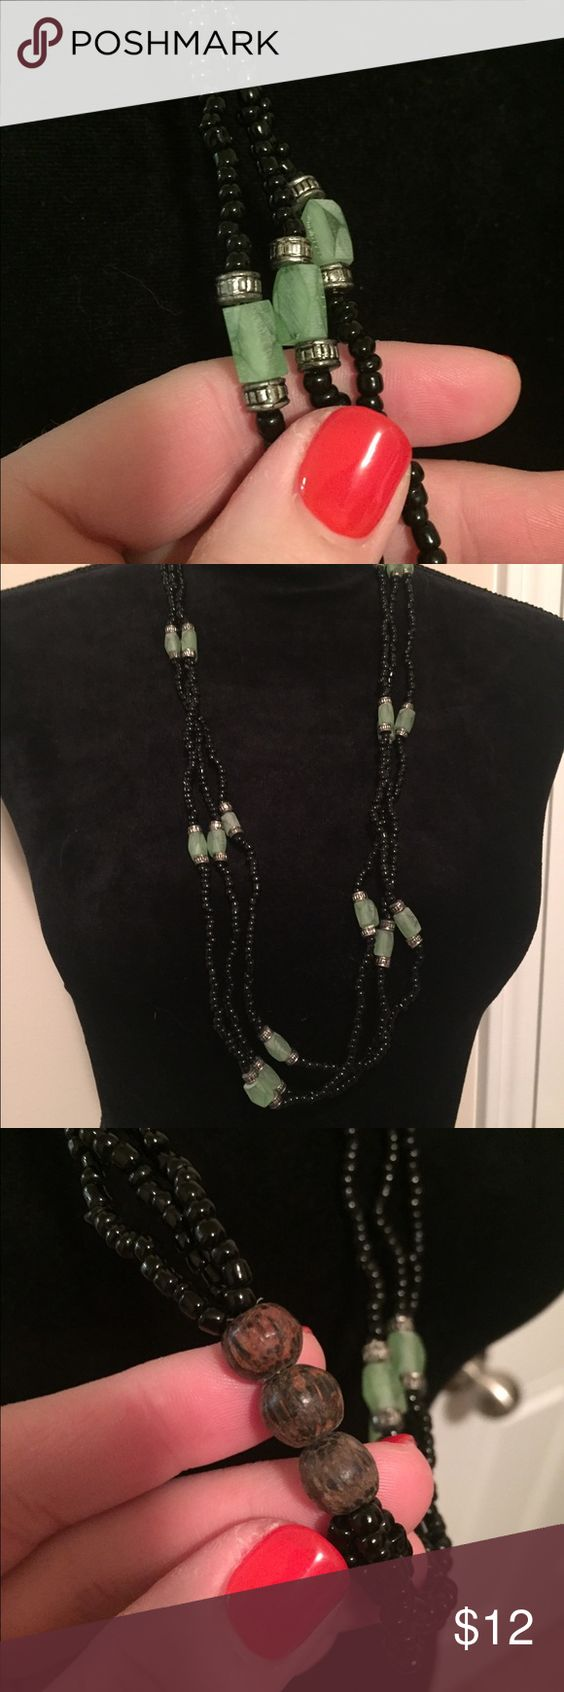 Beautiful Green & Black Beaded Necklace!! Love this necklace!!  It can be worn from day to night.  Great for the office, running around town, or going out for a special dinner.  The color pops. Jewelry Necklaces